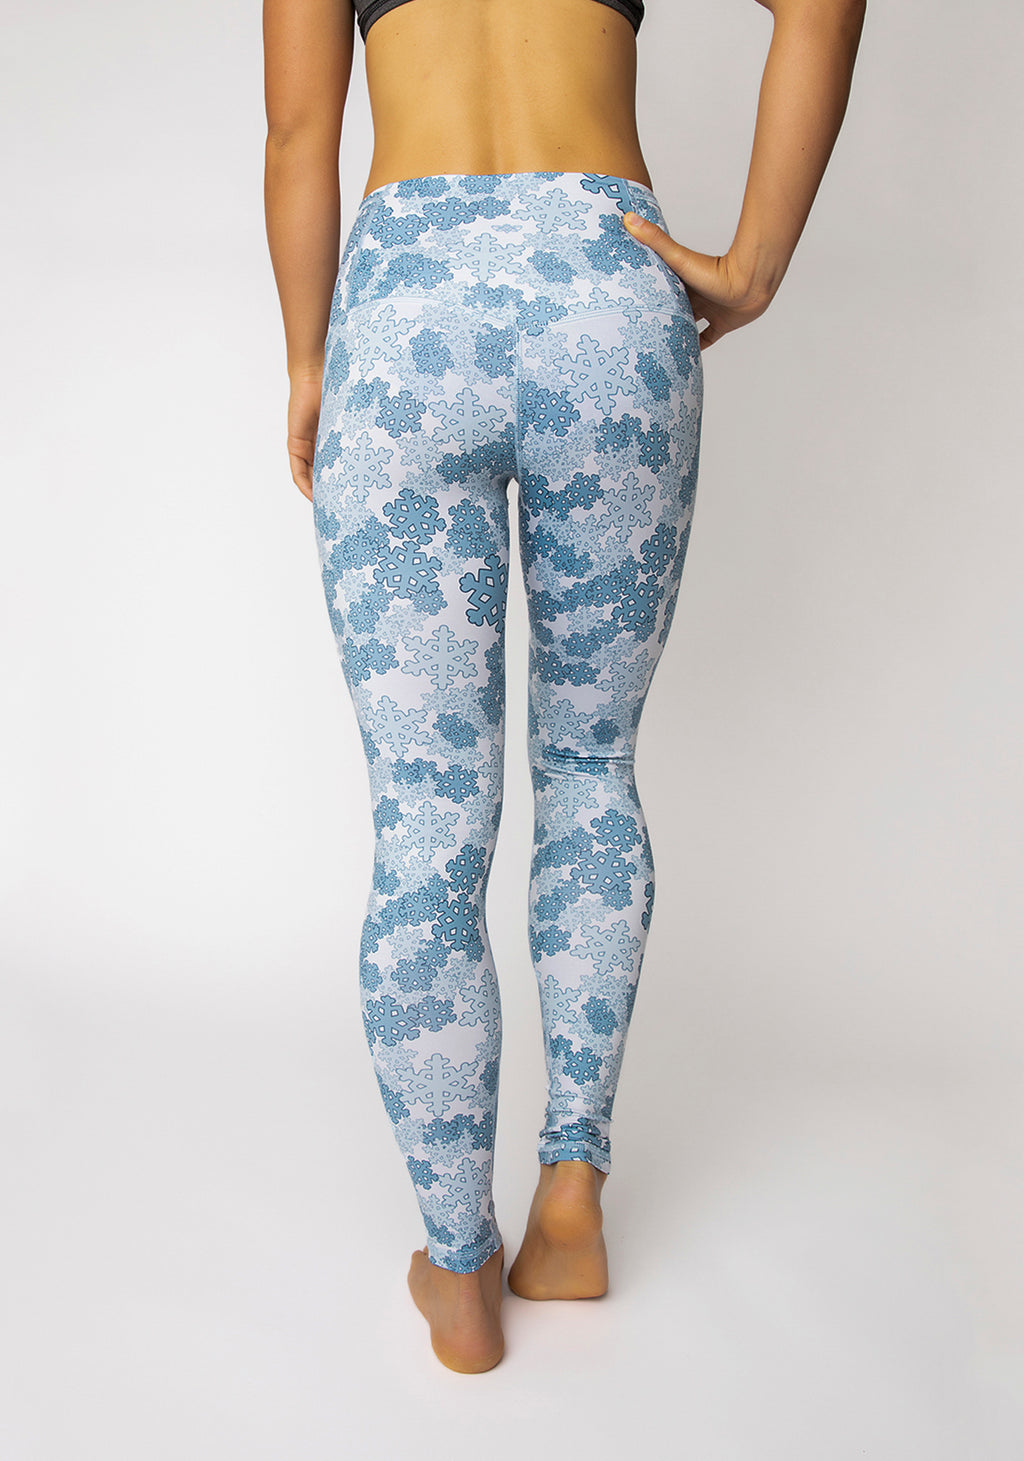 "Basecamp leggings in ""Winter Sprinkles"" print - last sizes: 12 & 18"